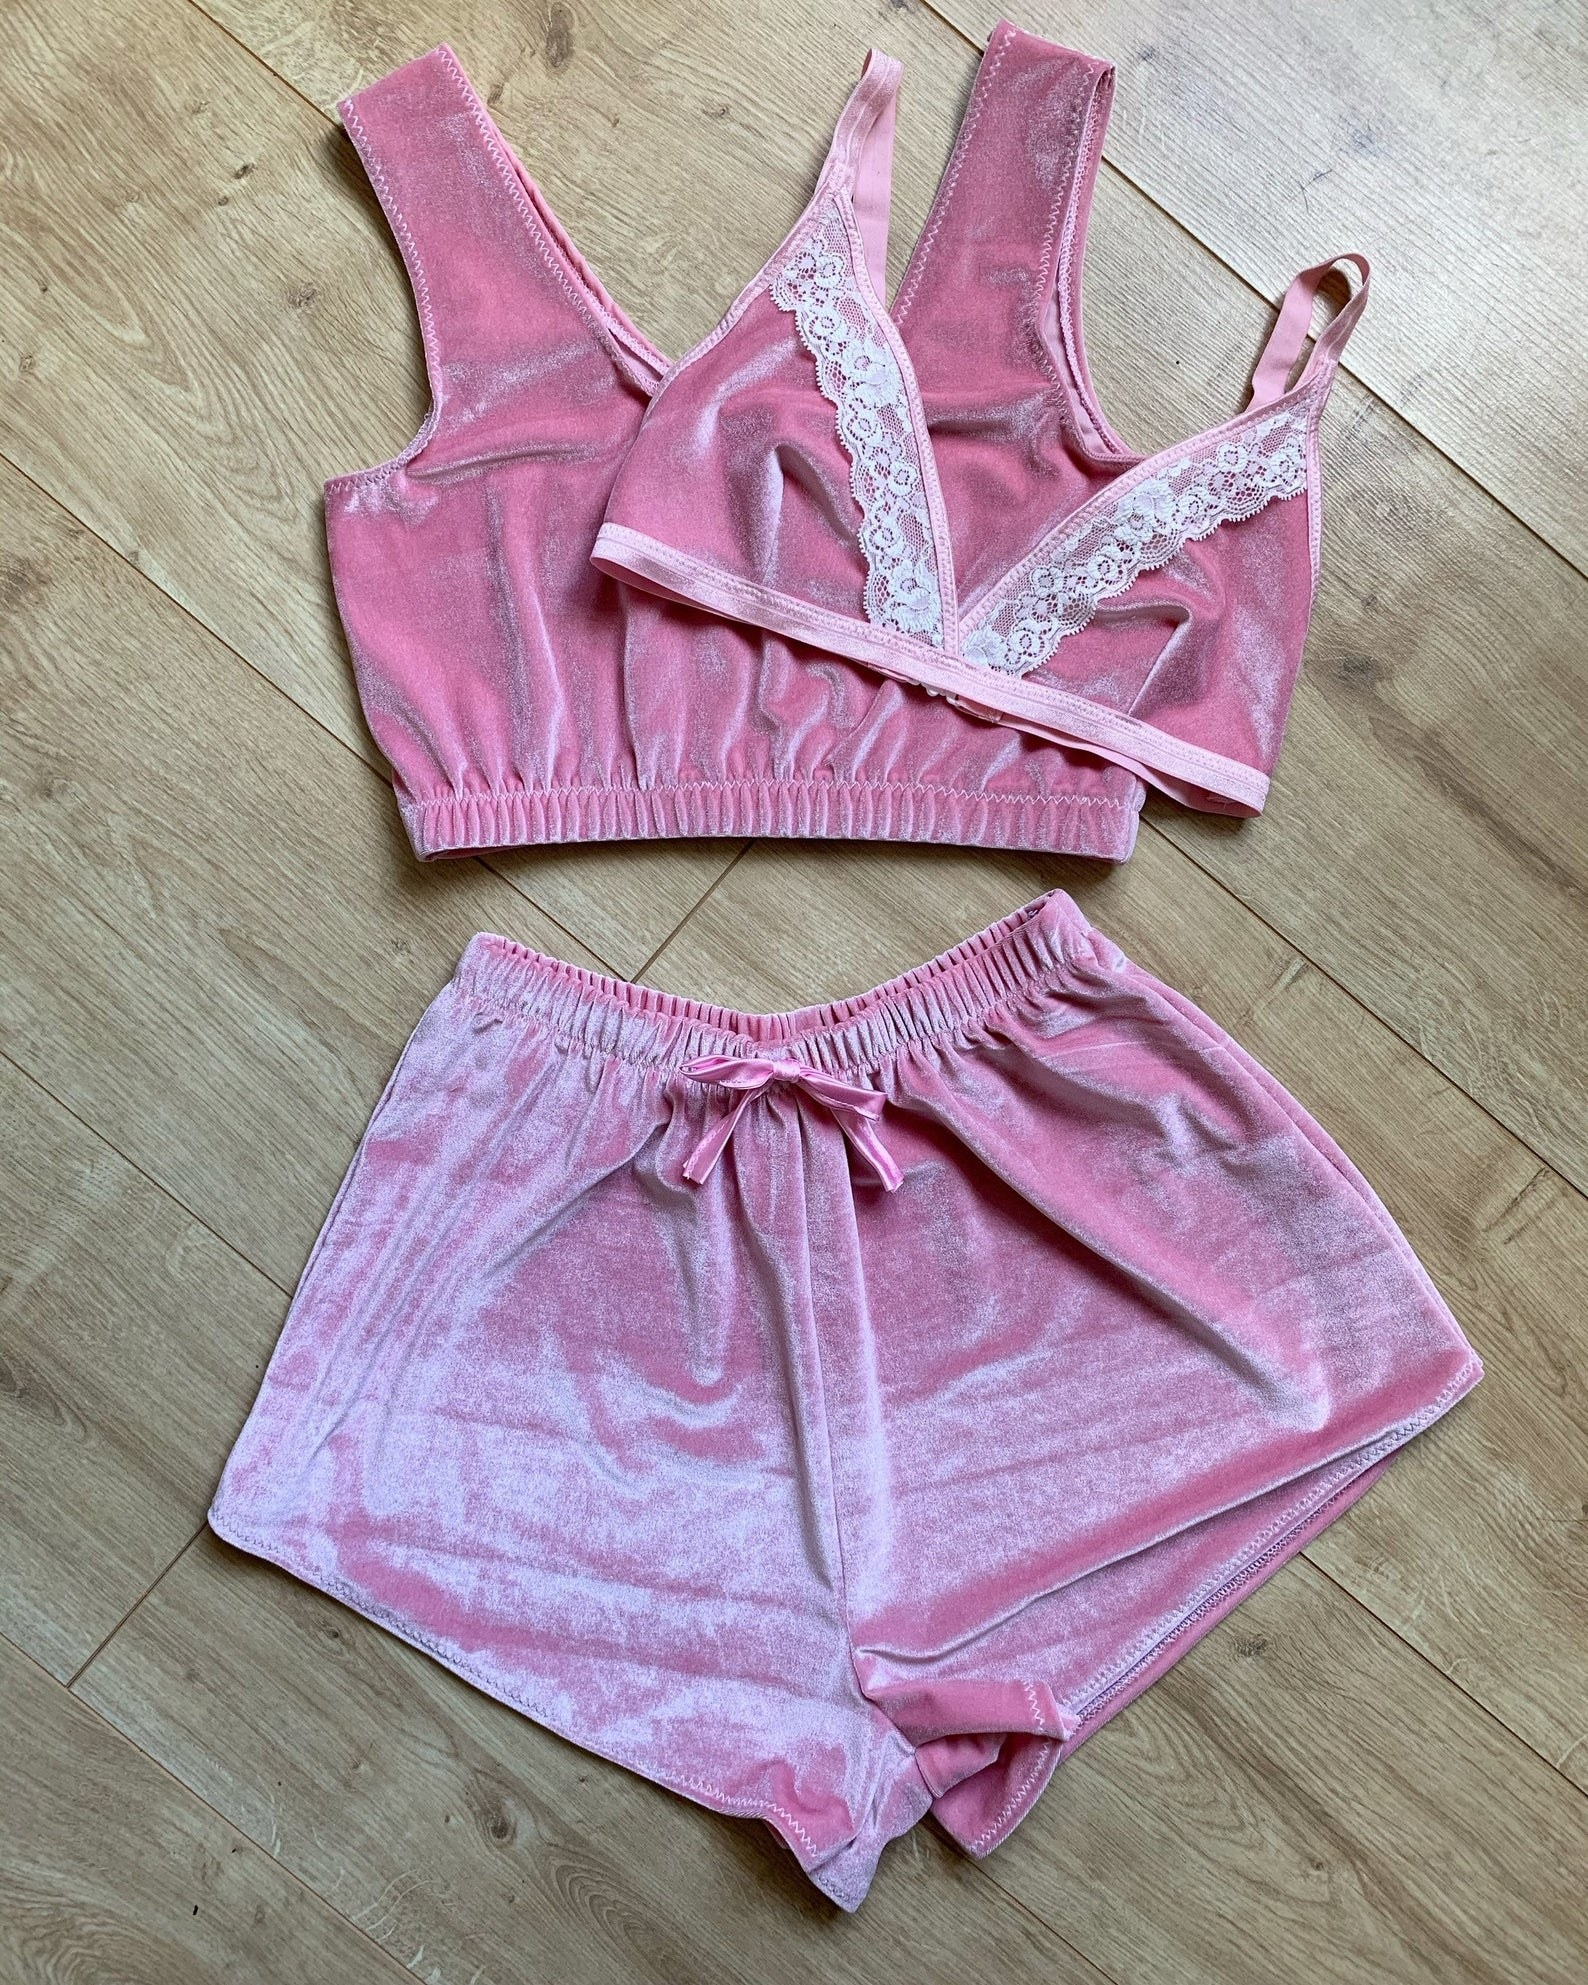 the layla velvet loungewear set laid out on the floor